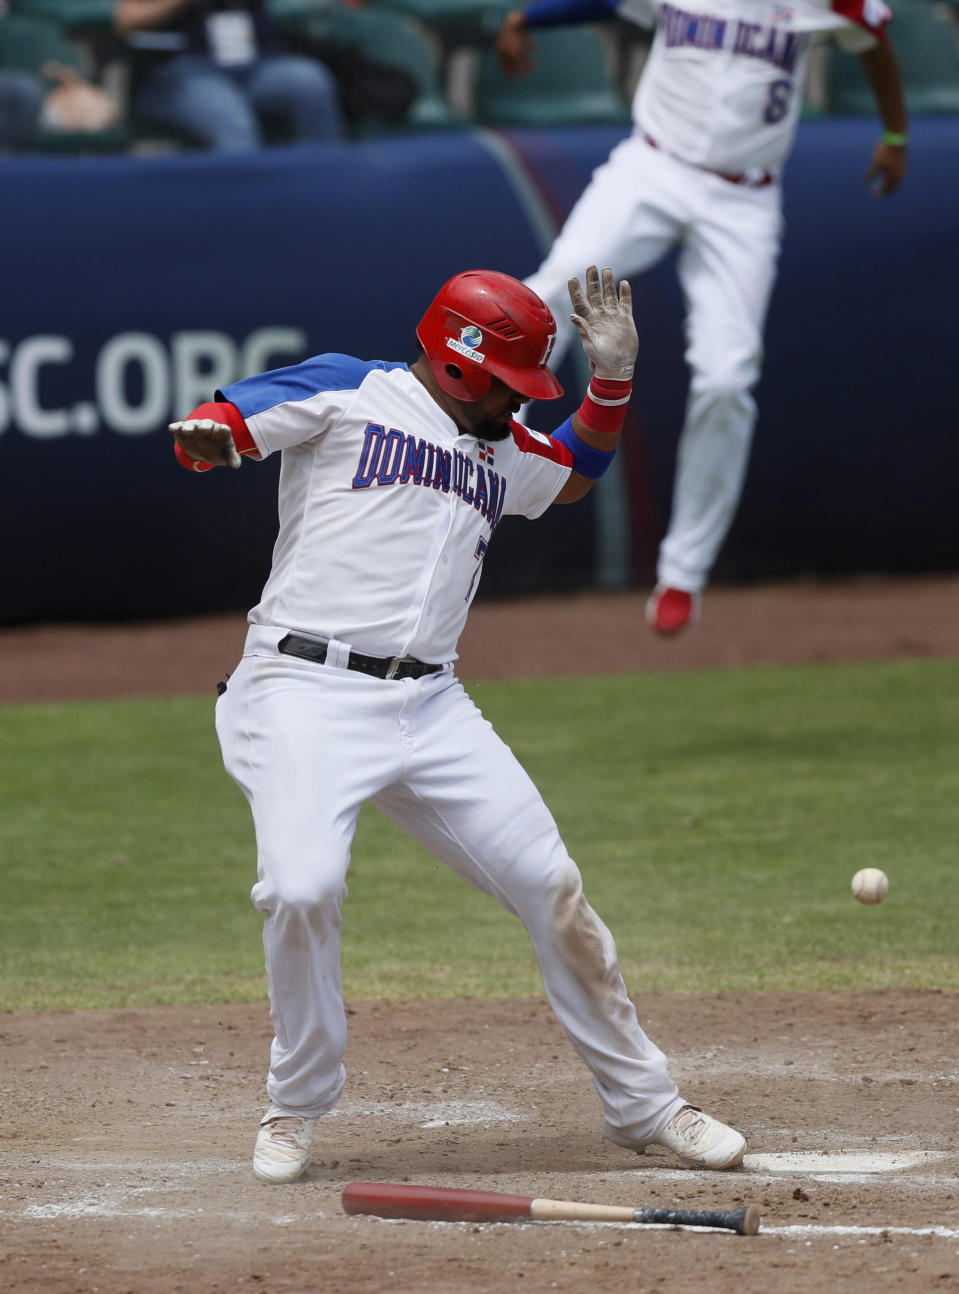 Dominican Republic catcher Charlie Valerio arrives safe at home plate after he scored a run against Venezuela during a final Olympic baseball qualifier game, in Puebla, Mexico, Saturday, June 26, 2021. (AP Photo/Fernando Llano)